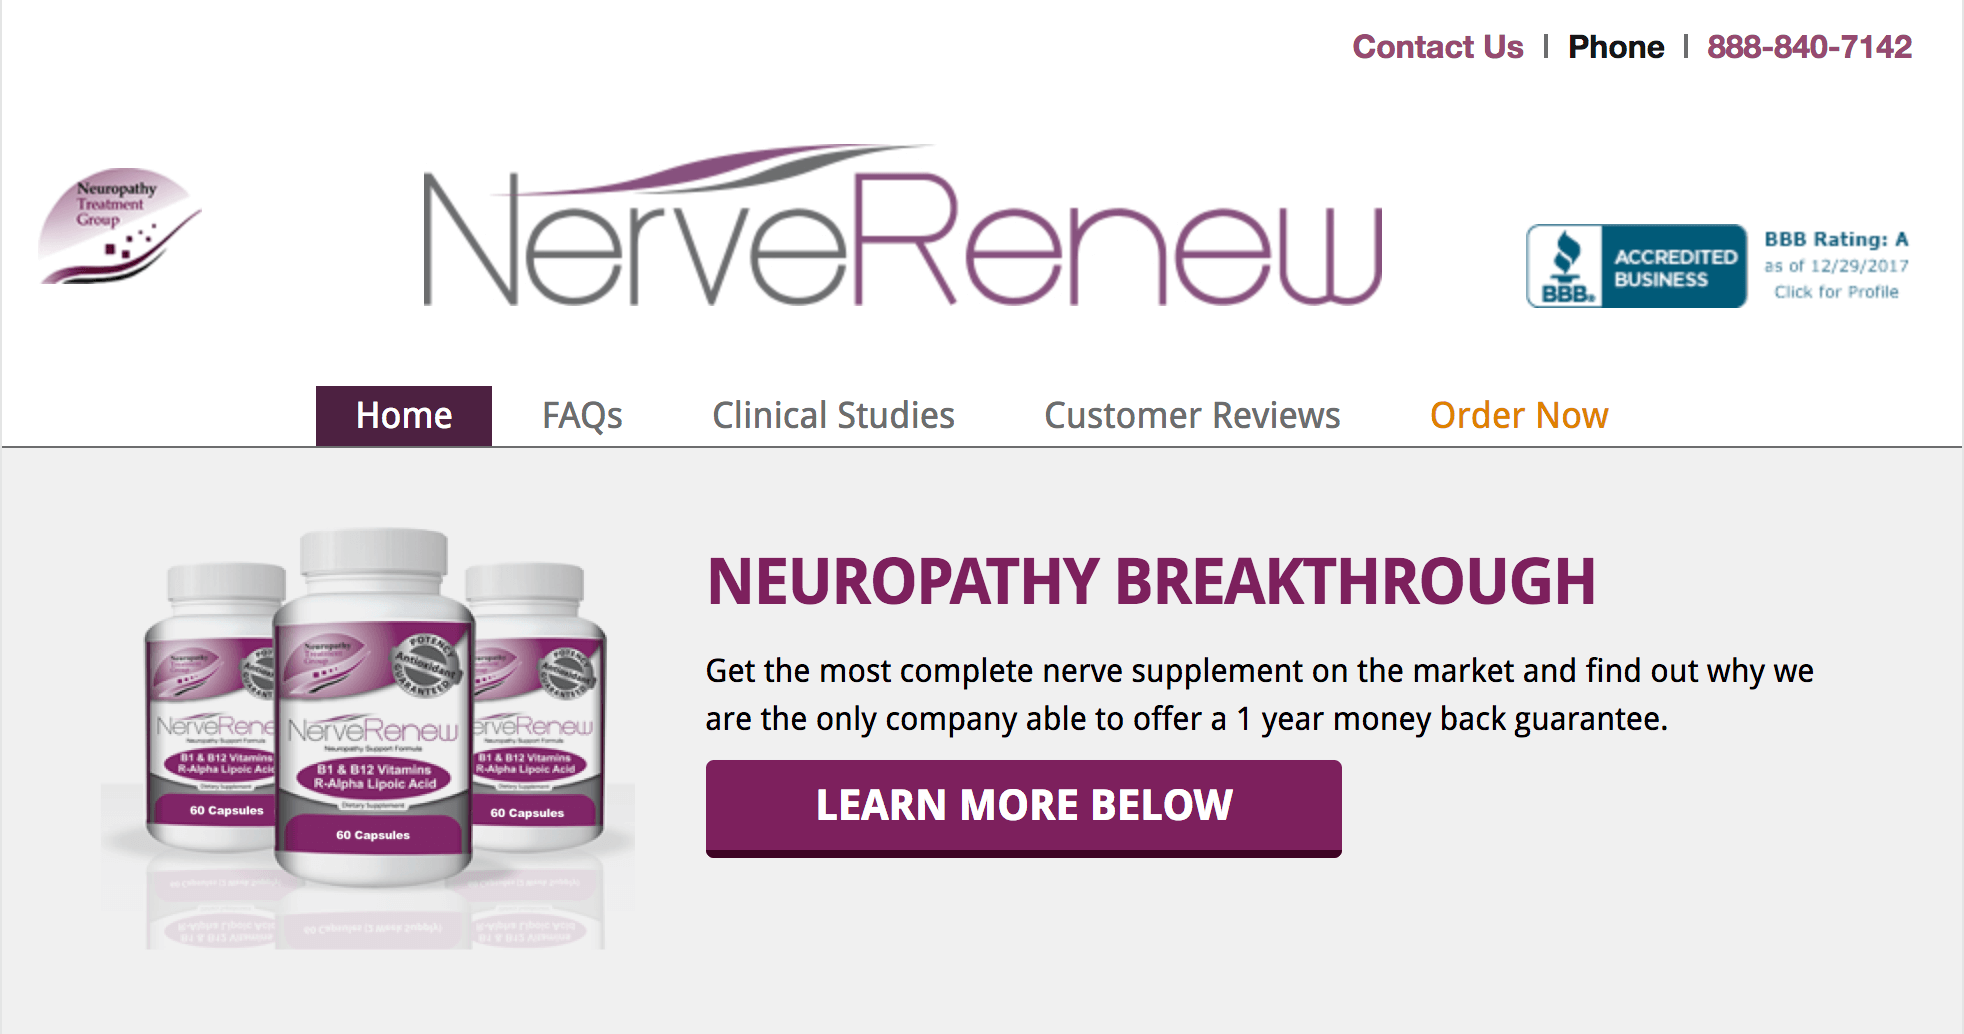 Who Is The Neuropathy Treatment Group?